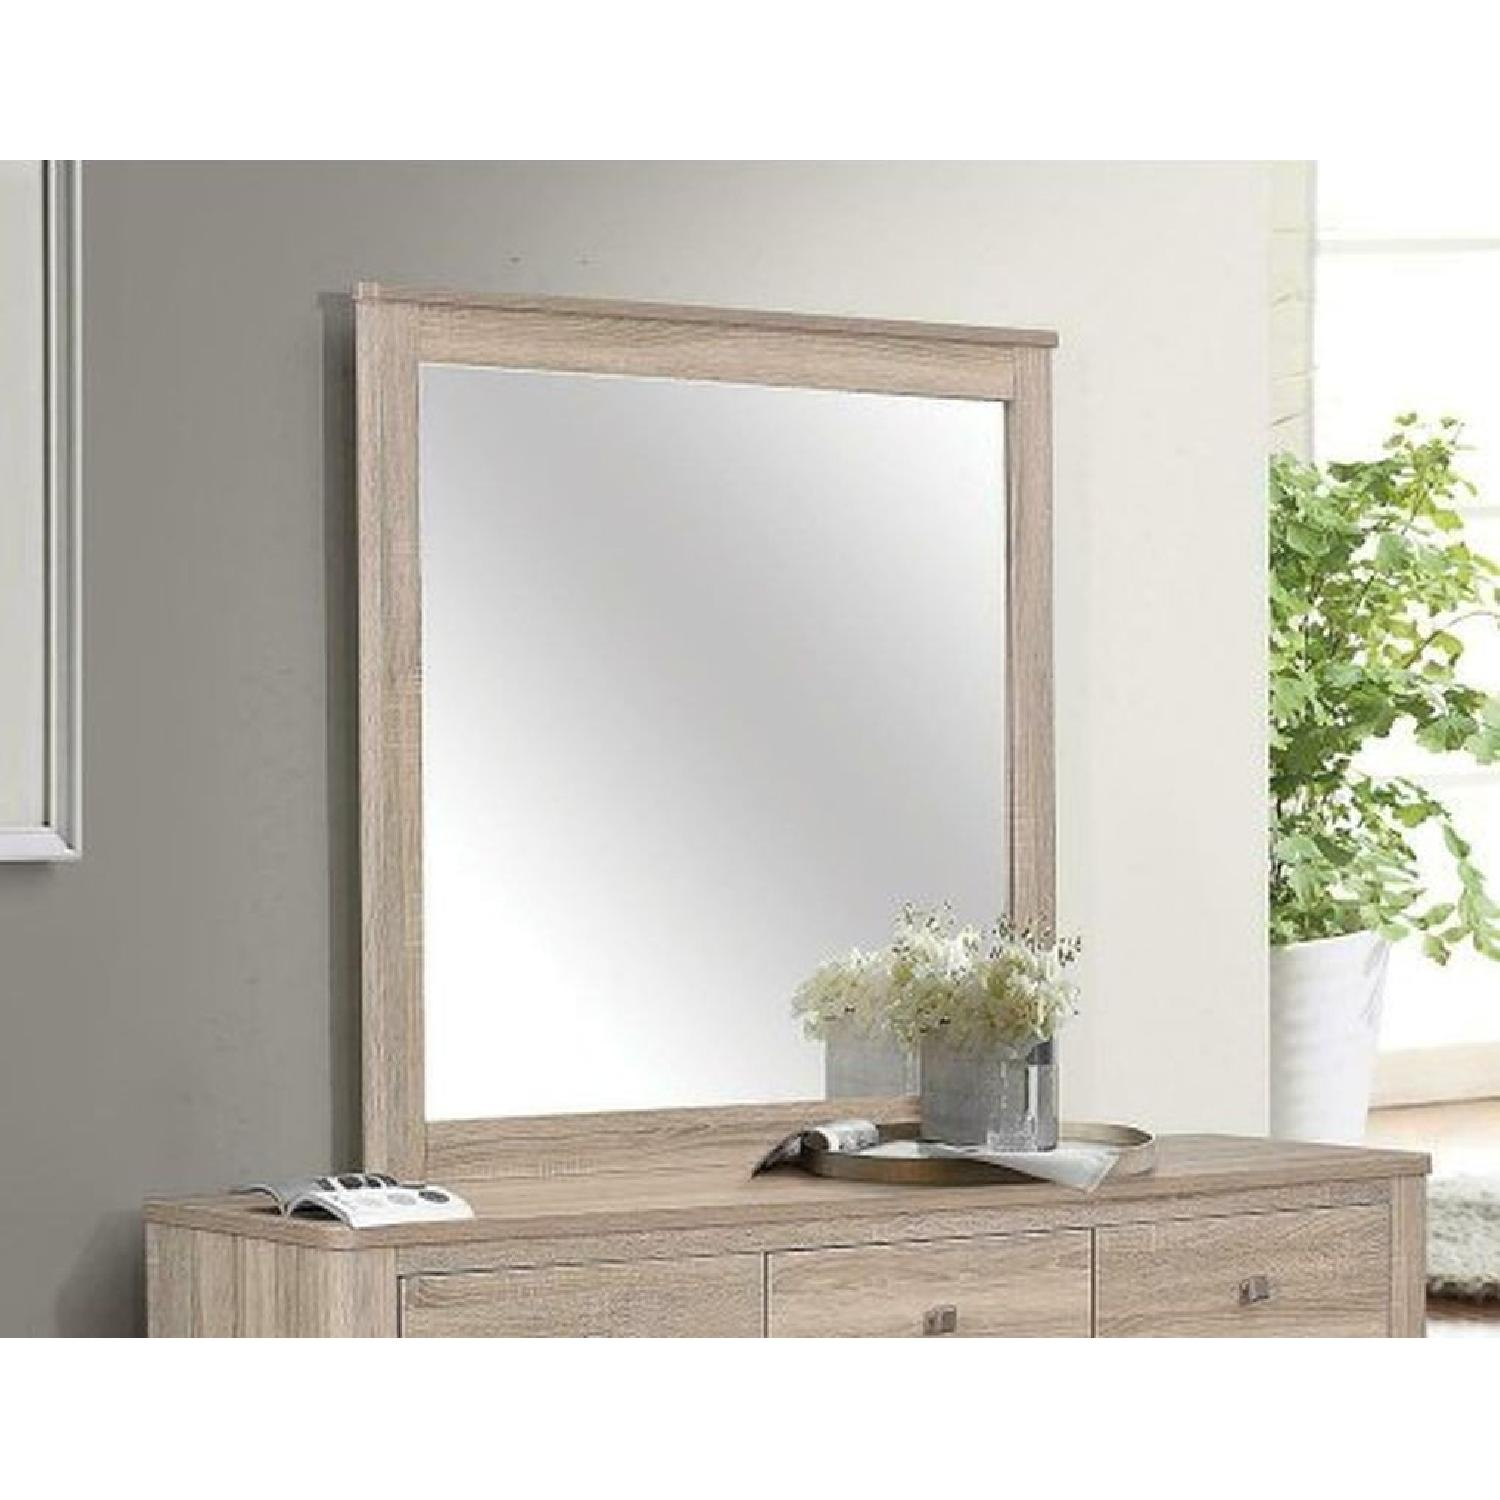 Mirror w/ Natural Finish Frame - image-1